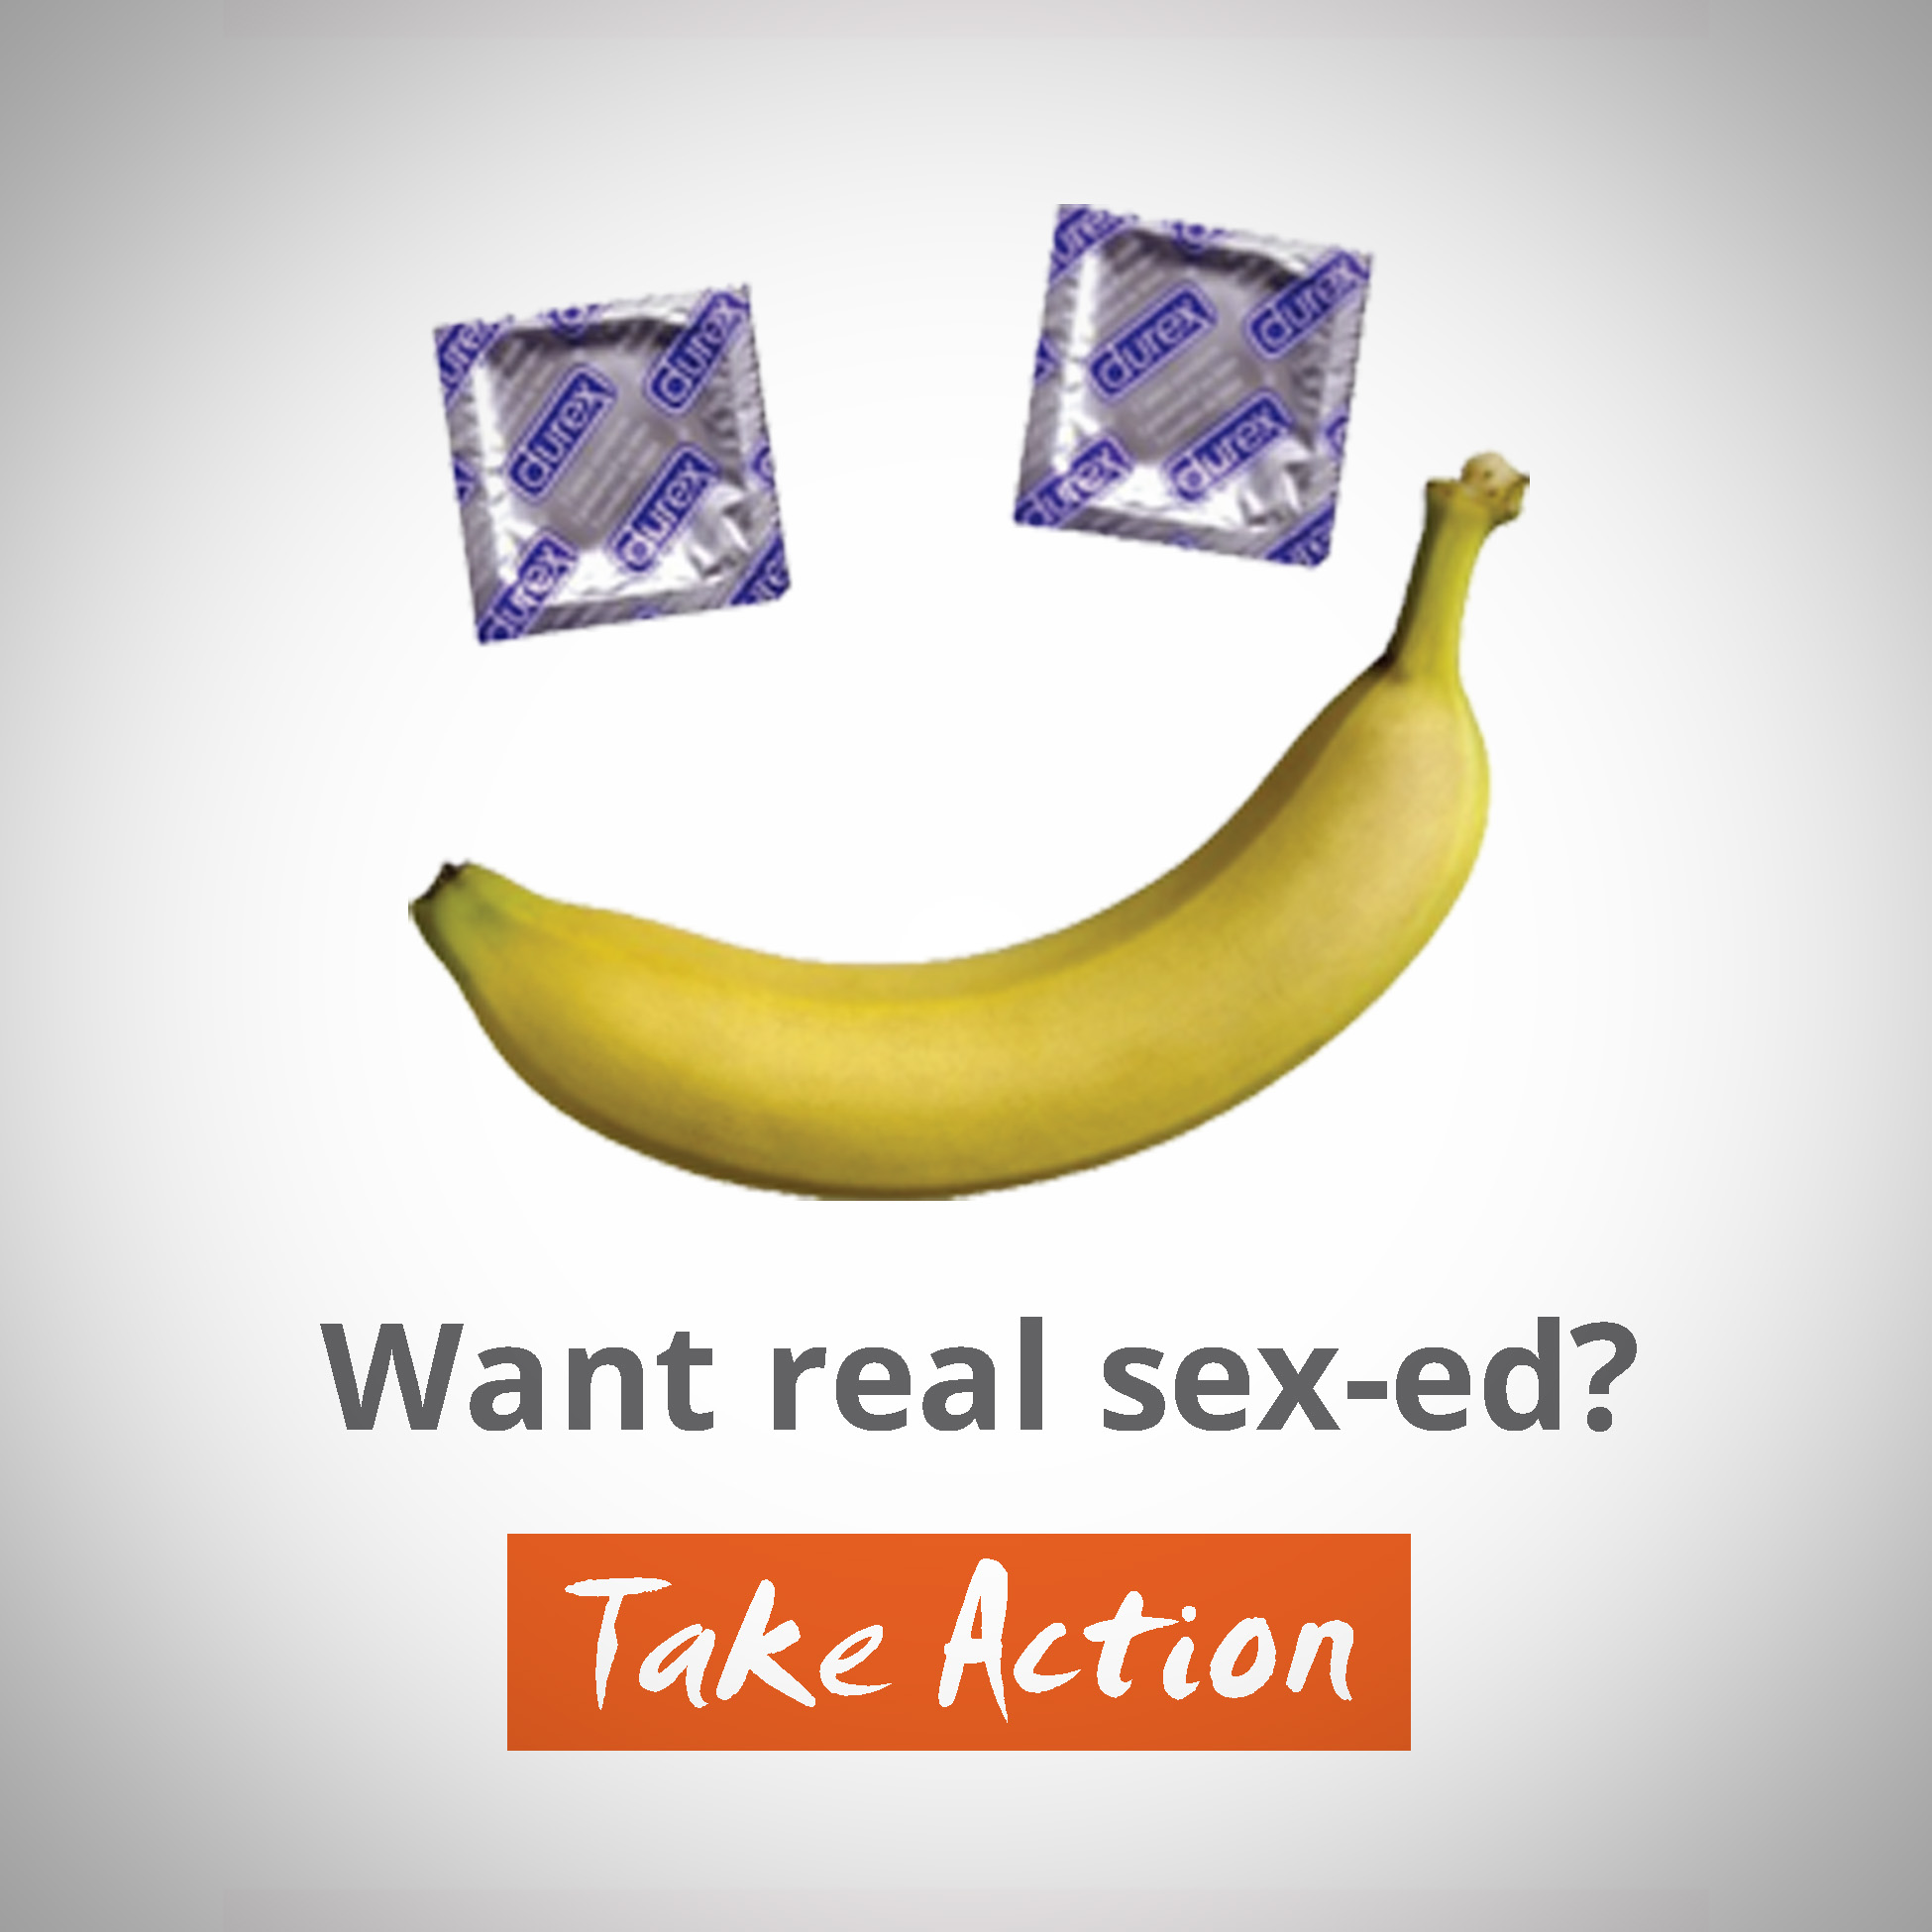 Take action on sex ed